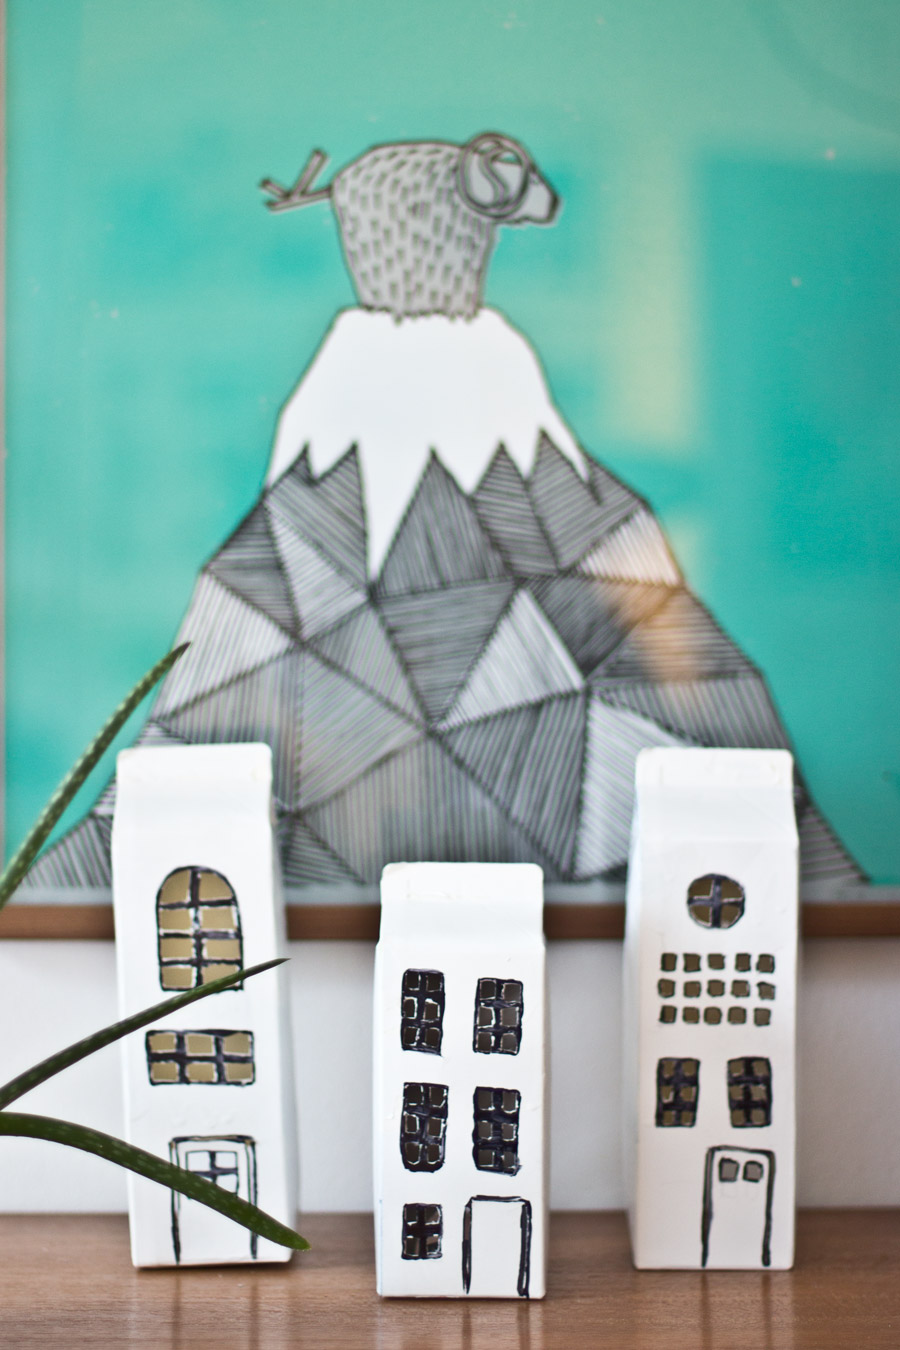 milk-boxes-light-houses-diy